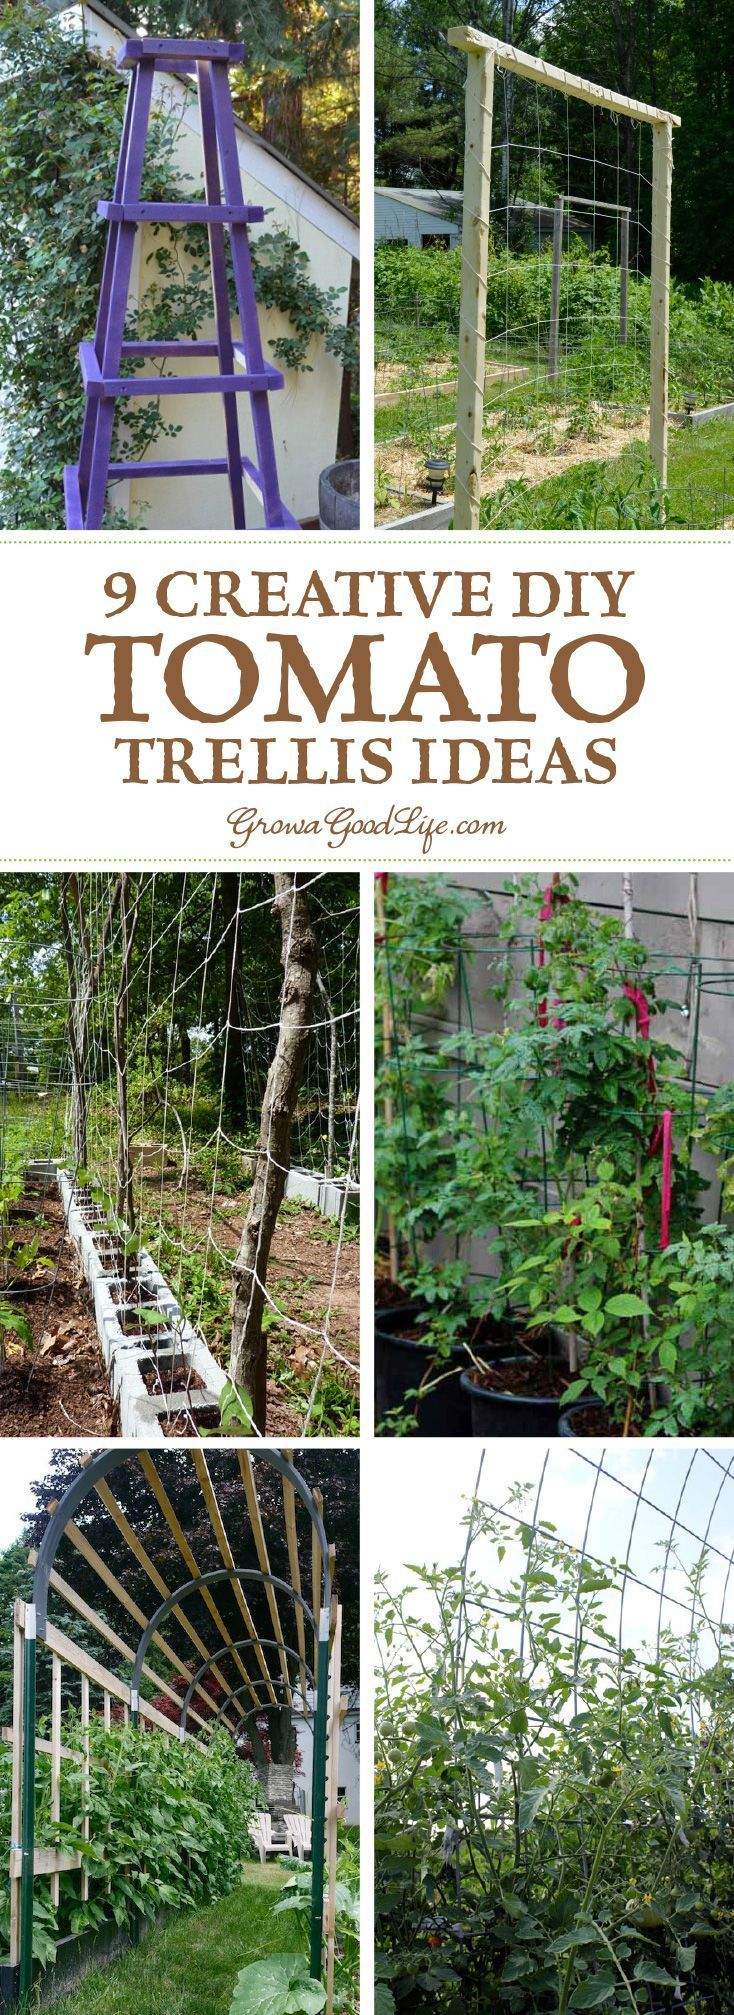 A tomato trellis is a freestanding structure usually made from wood or metal that is used to support the sprawling vines and heavy fruit of the tomato plant. Providing support for your tomato plants helps keep the plants healthy, so they can produce maximum yields. Read on for some creative DIY tomato trellis ideas.